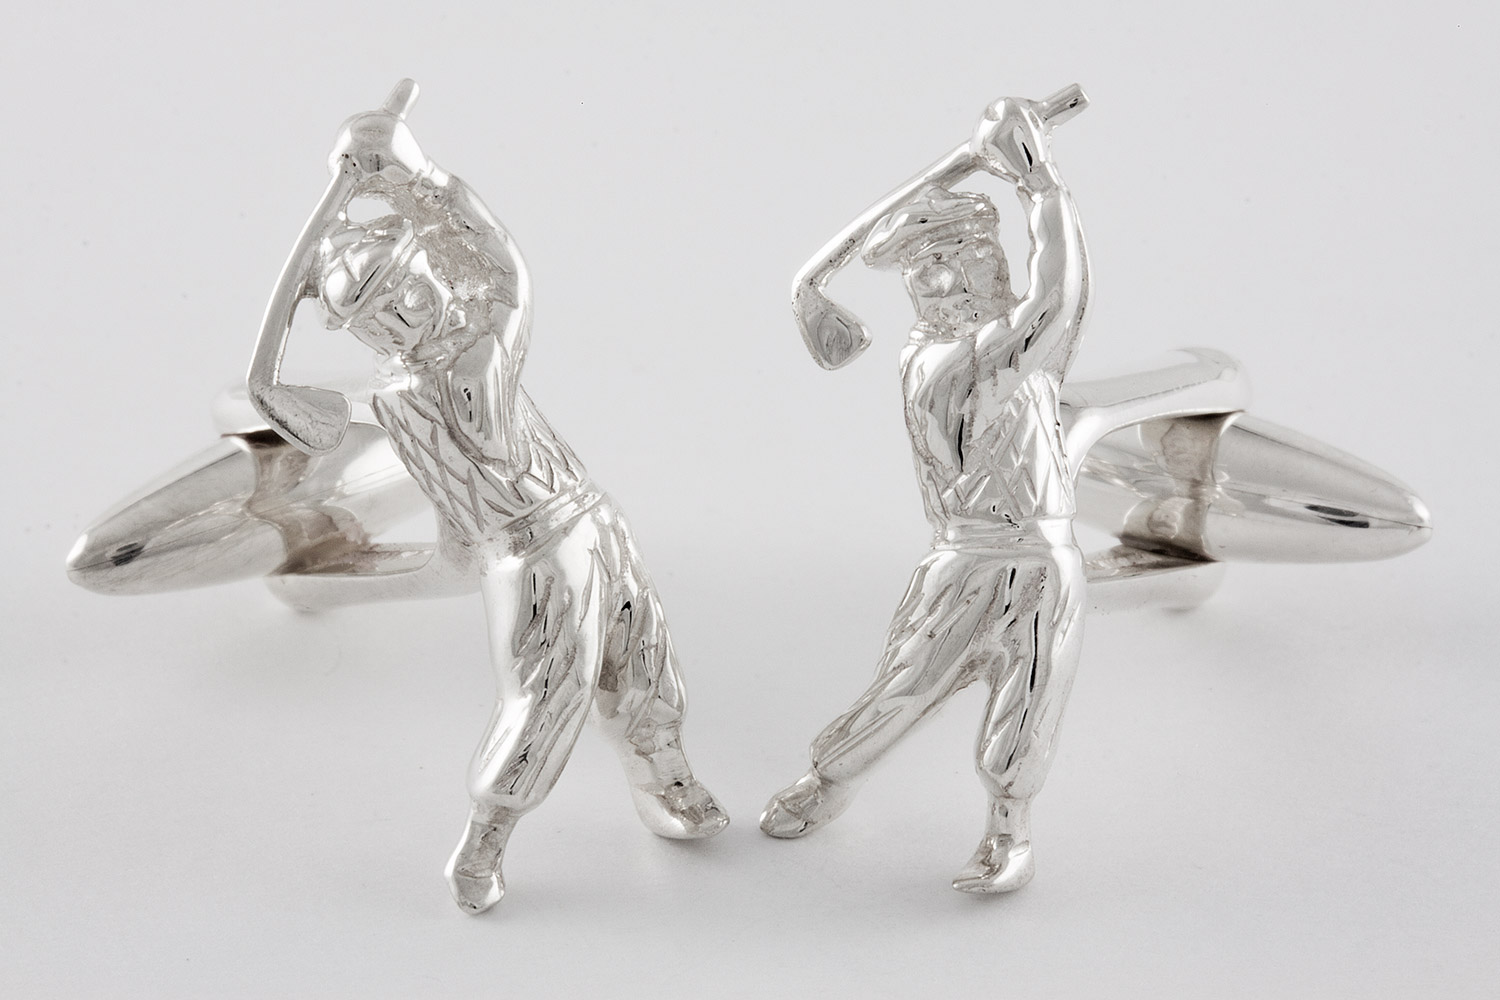 Golfer cufflinks handcrafted from sterling silver 925 for Golf buflings